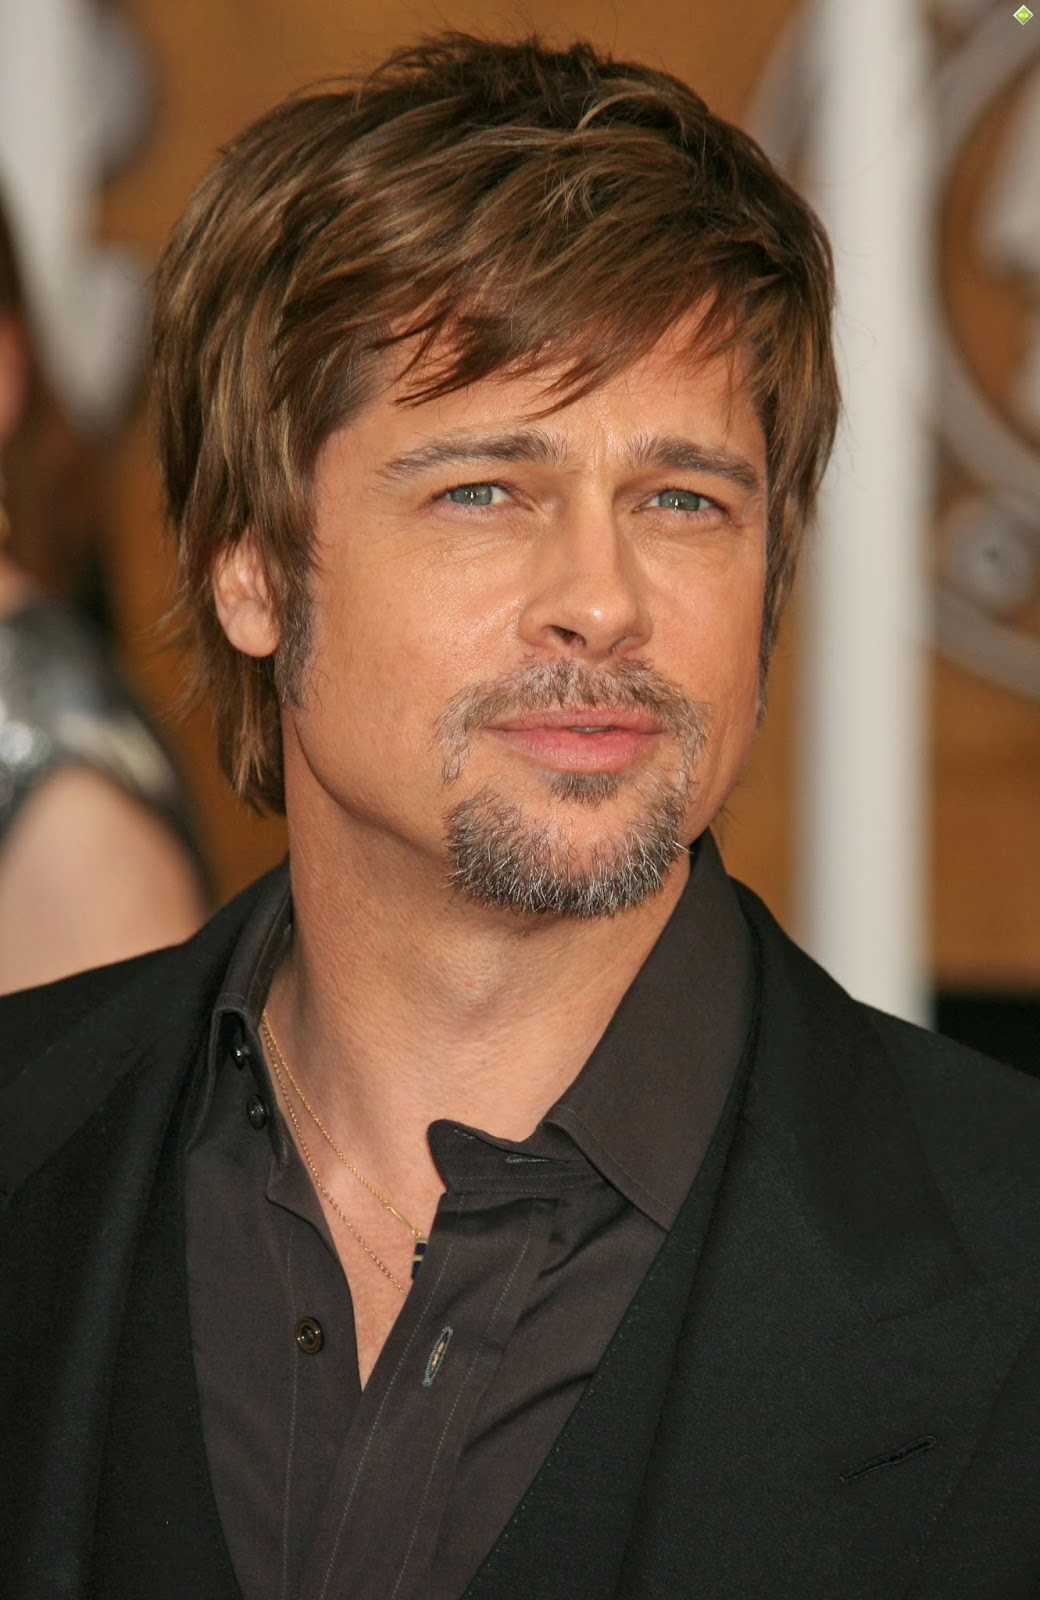 Brad Pitt Hairstyle Pics The Style Vacation